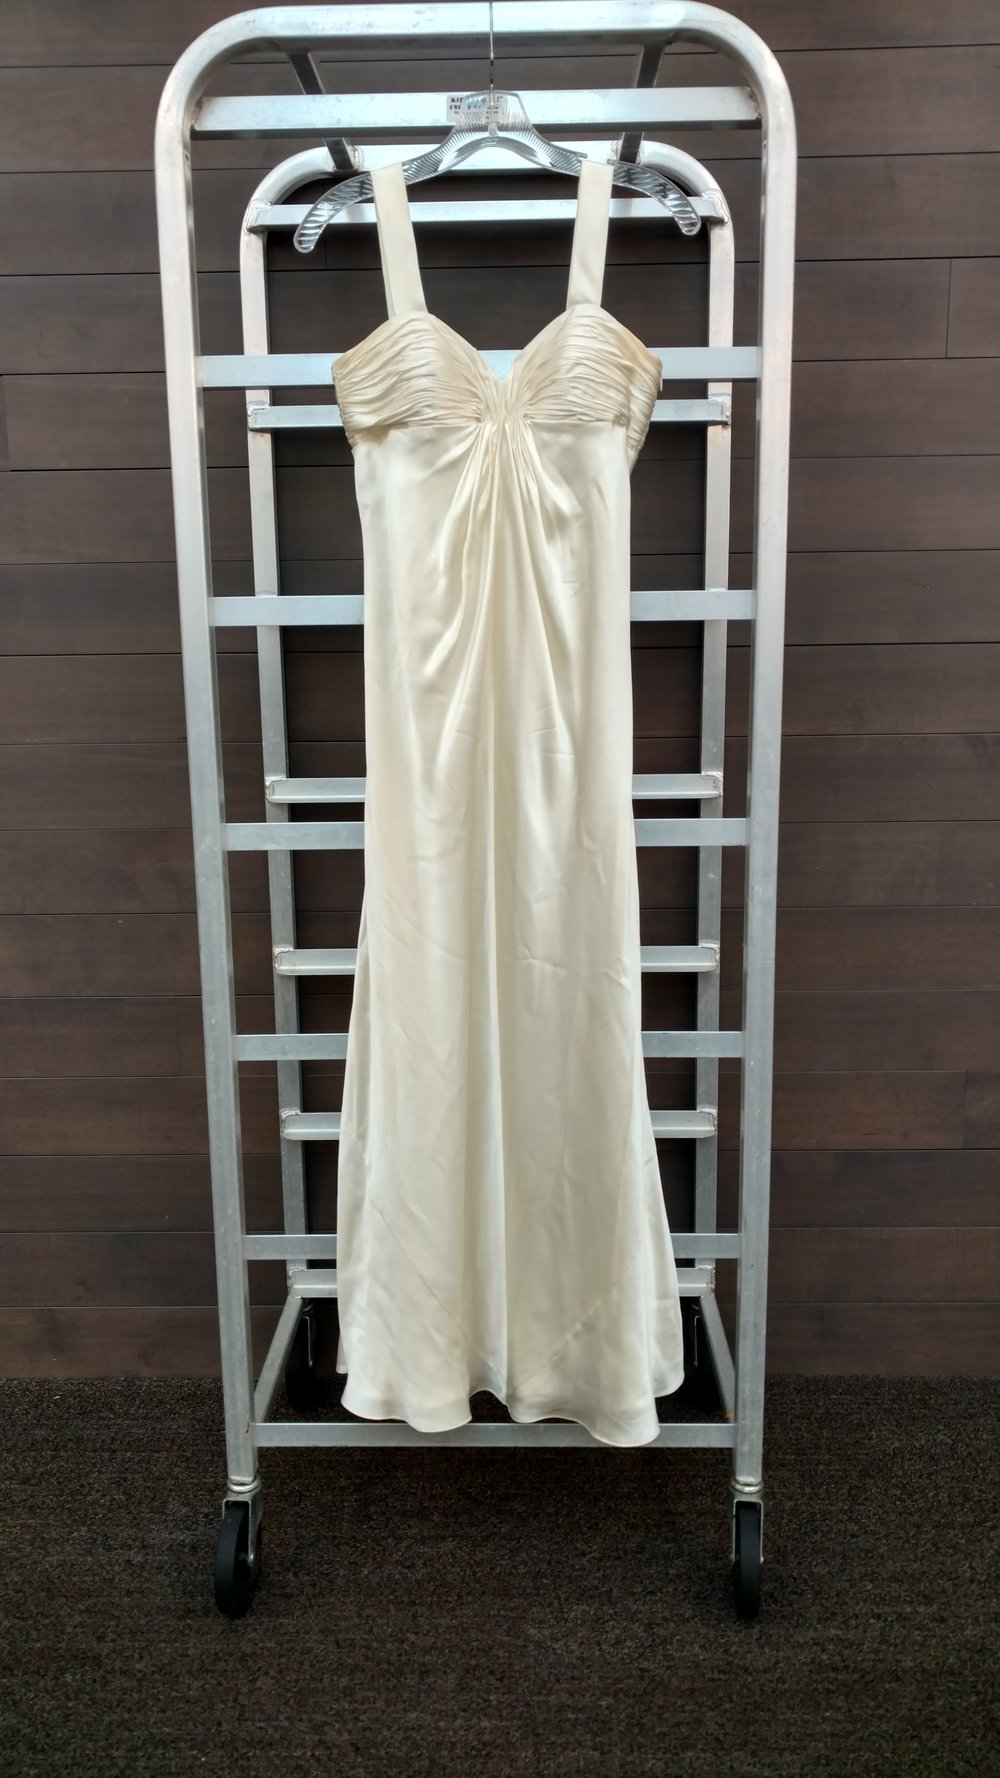 Dress 2 - Laundry by Shelli Segal - Ivory, Size 2 Waist 28 inches, L ength 43 inches